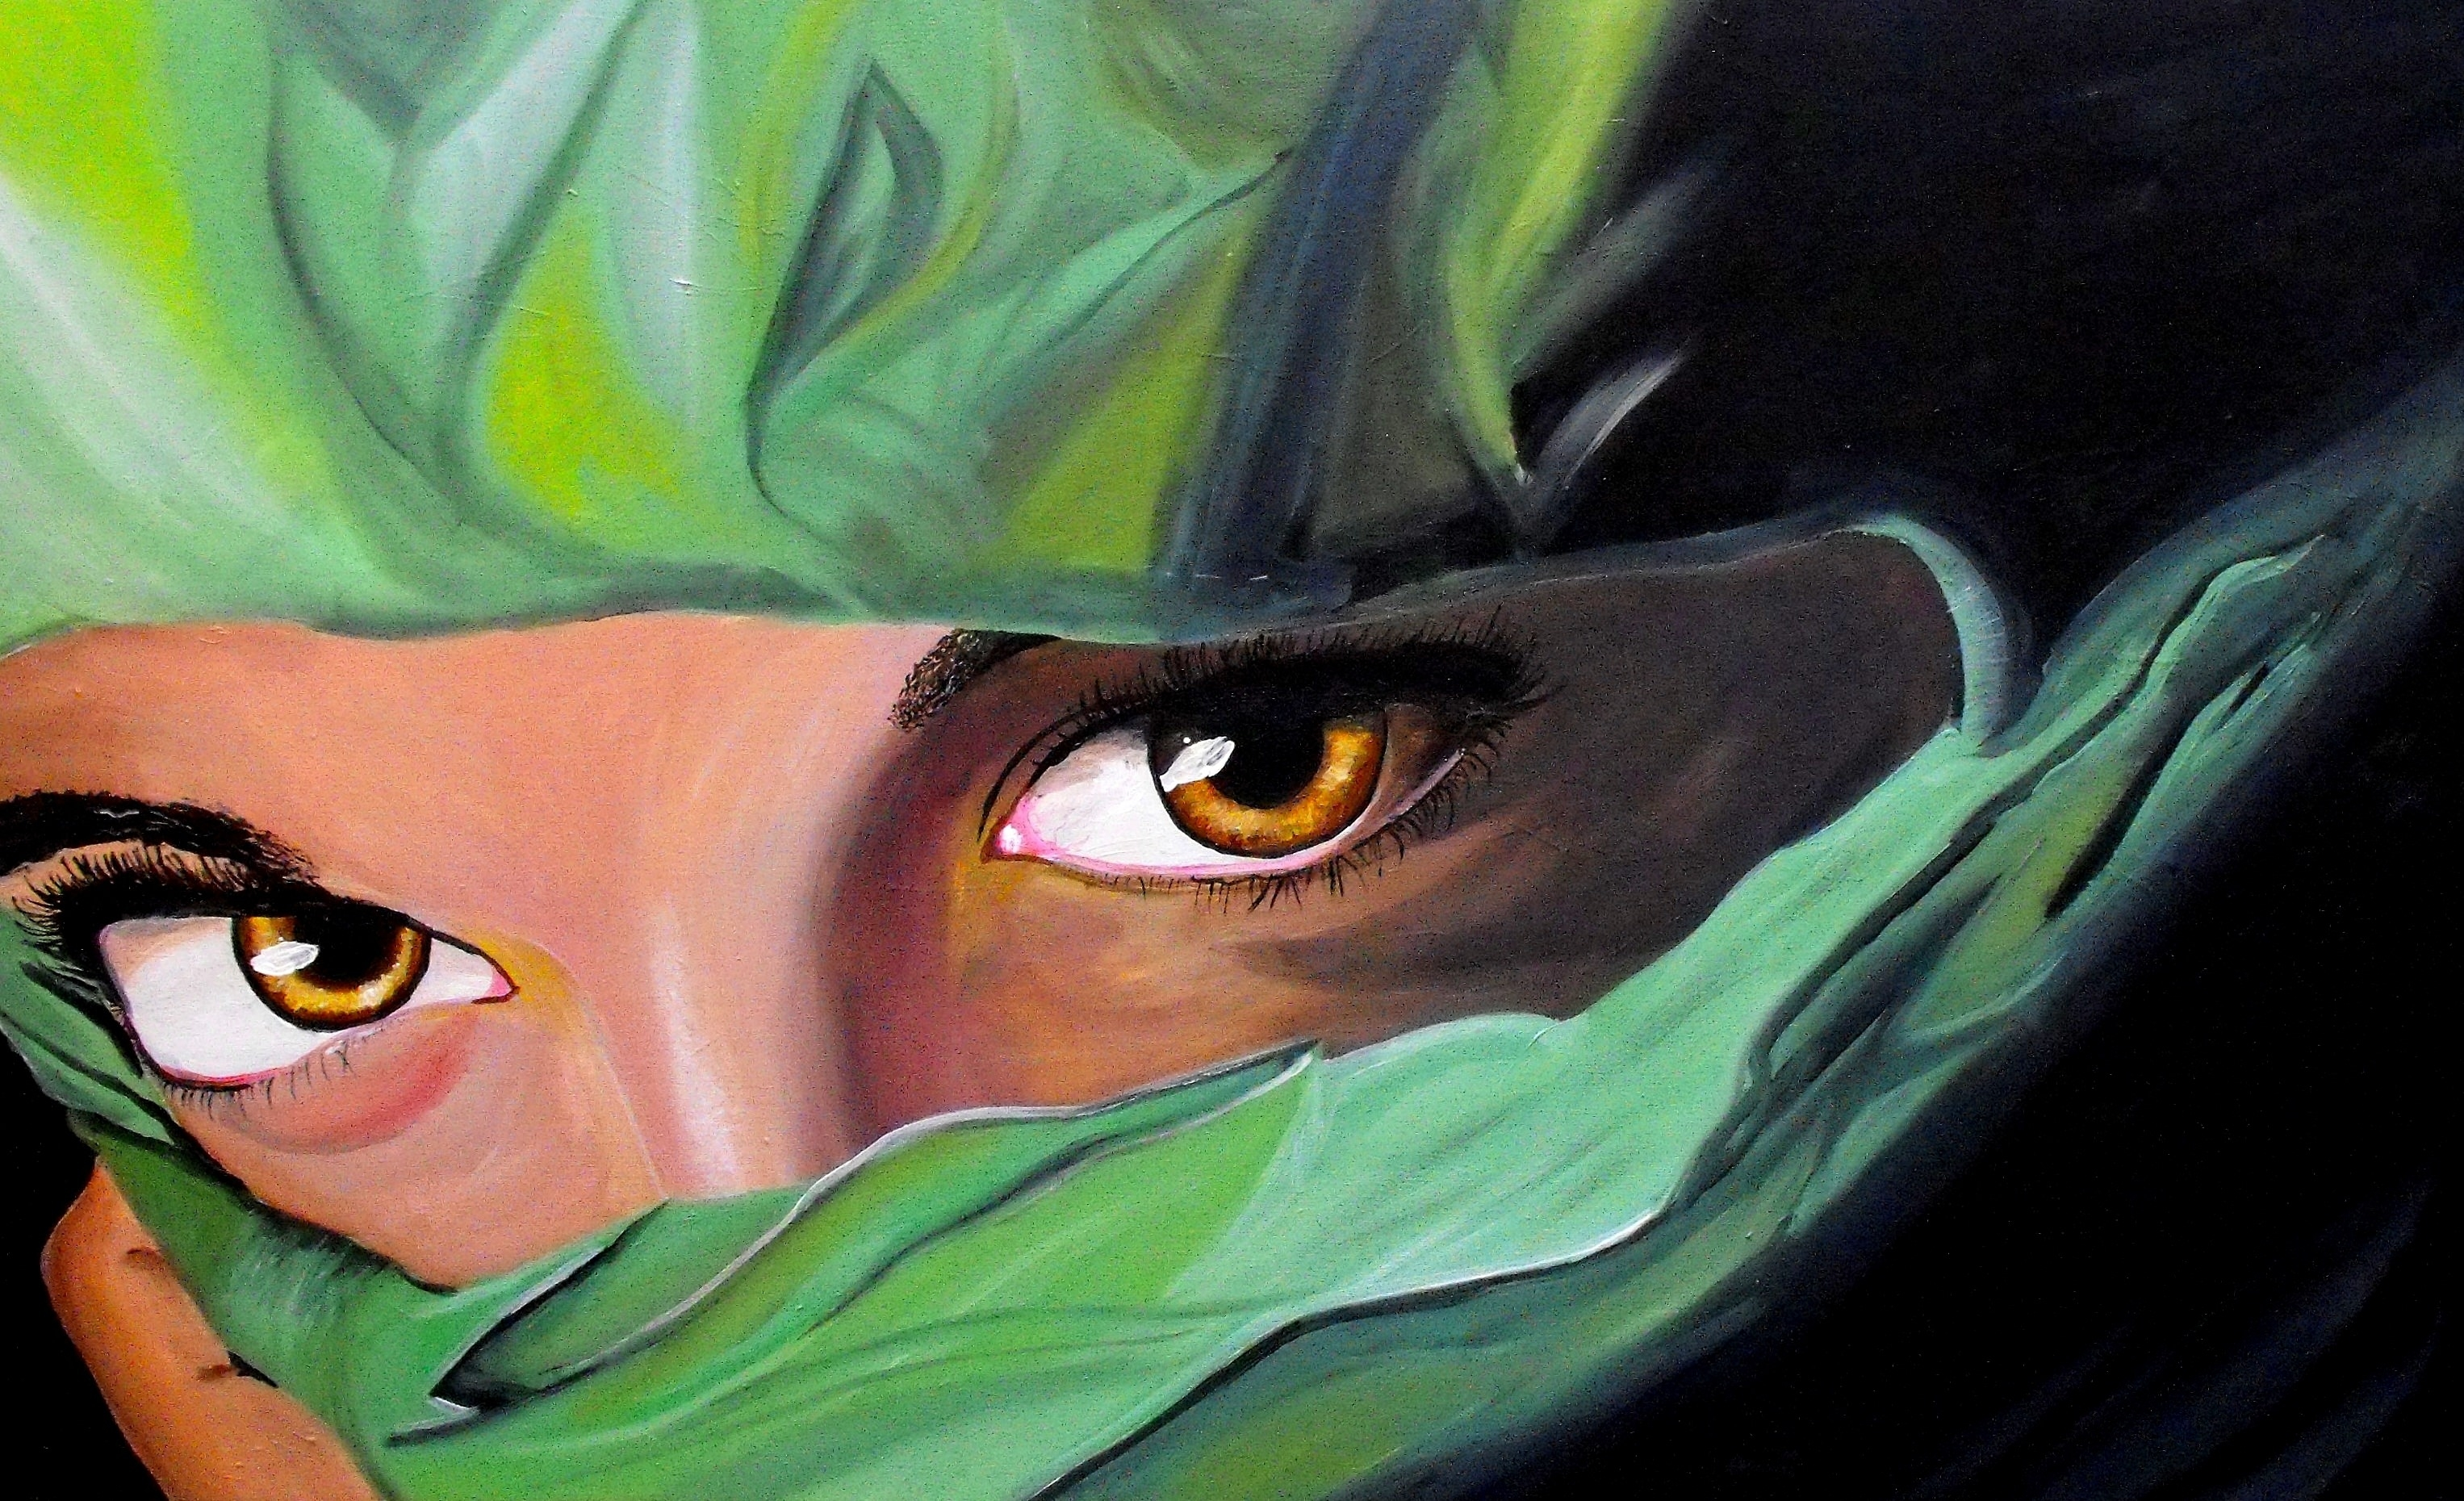 Painting Girl Art with Beautiful Eyelashes and Green Scarf